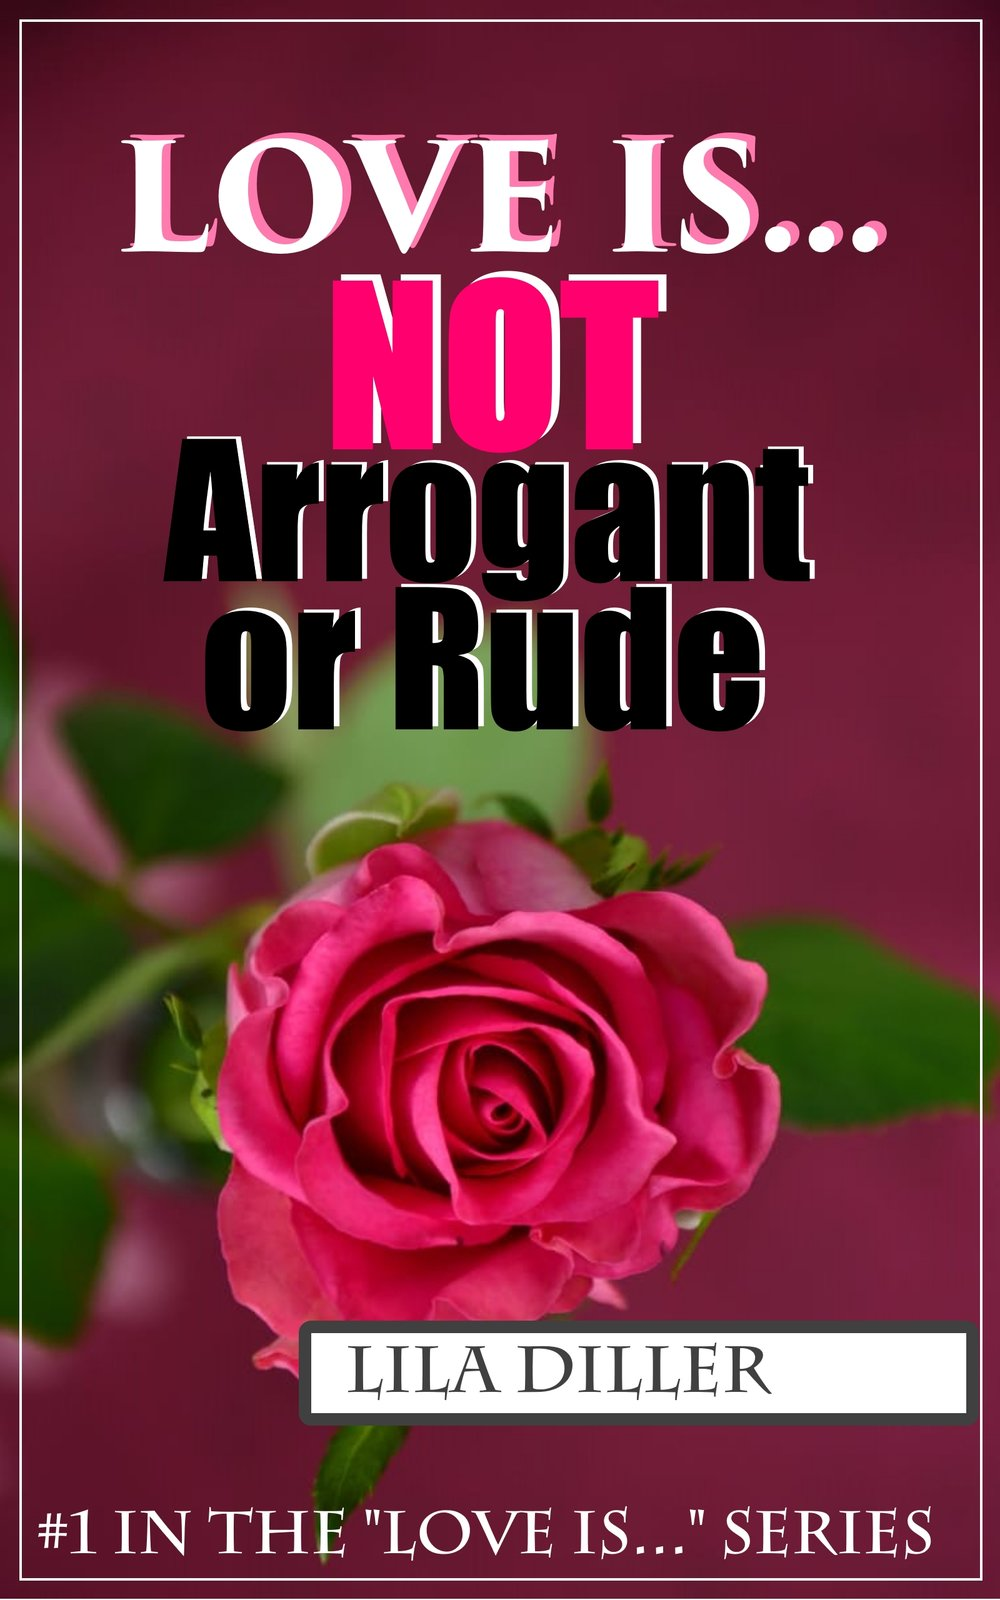 at the end of Love is Not Arrogant or Rude... -